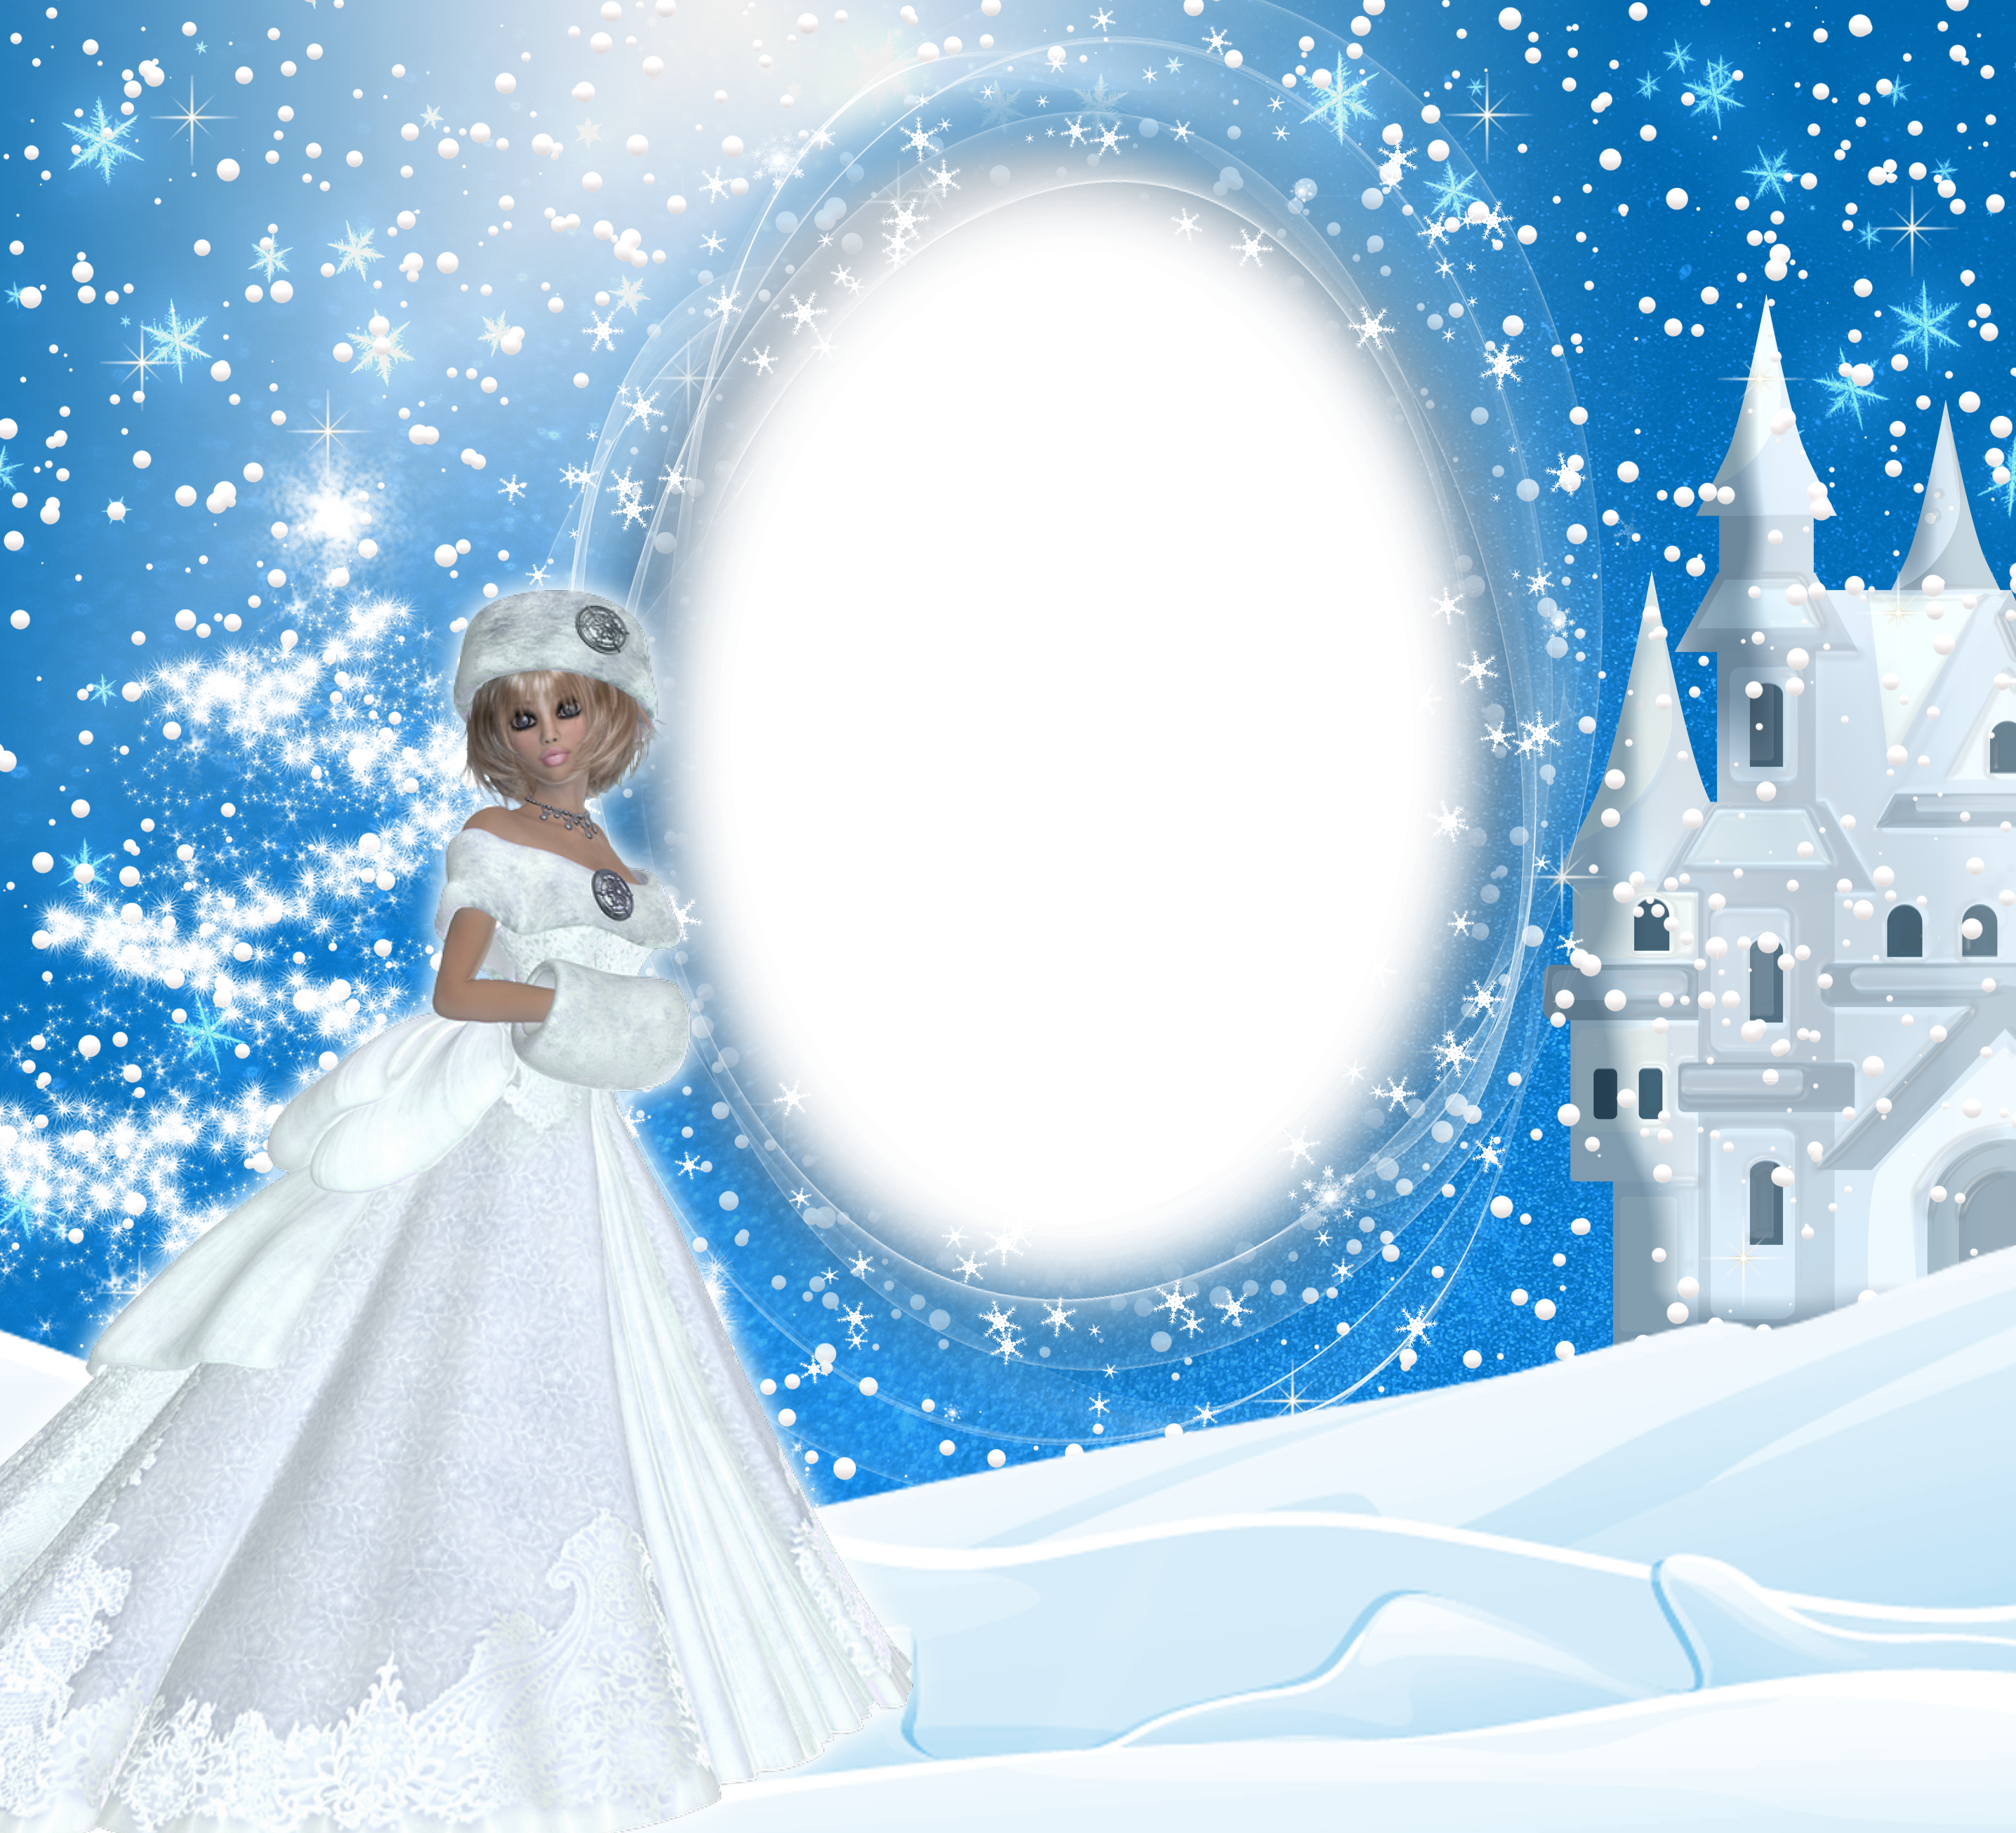 banner download Winter lady png frame. Snow borders clipart